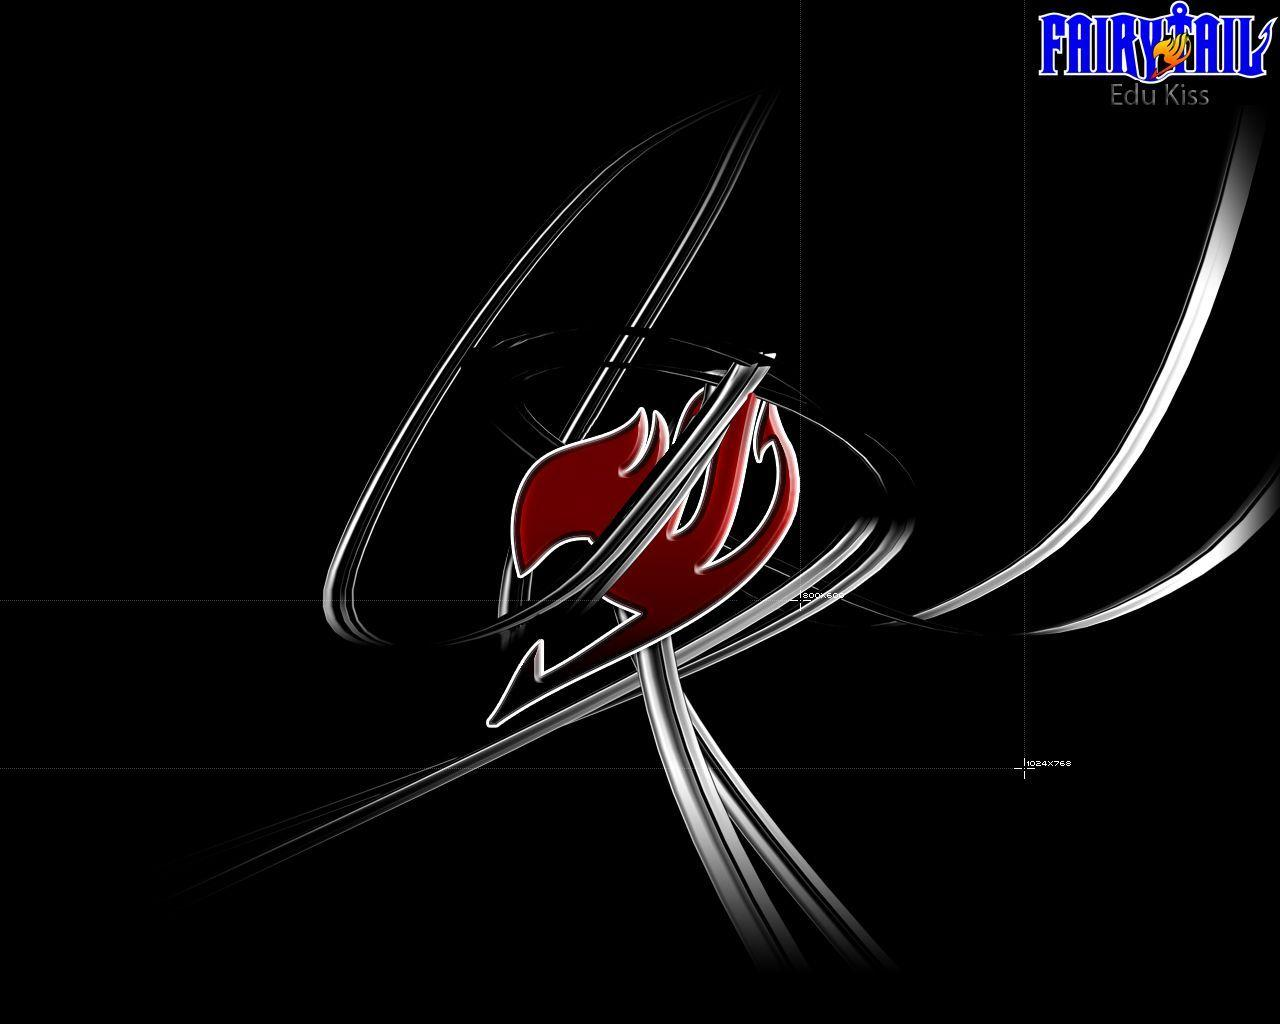 Wallpapers FAiry Tail Dark by edukiss